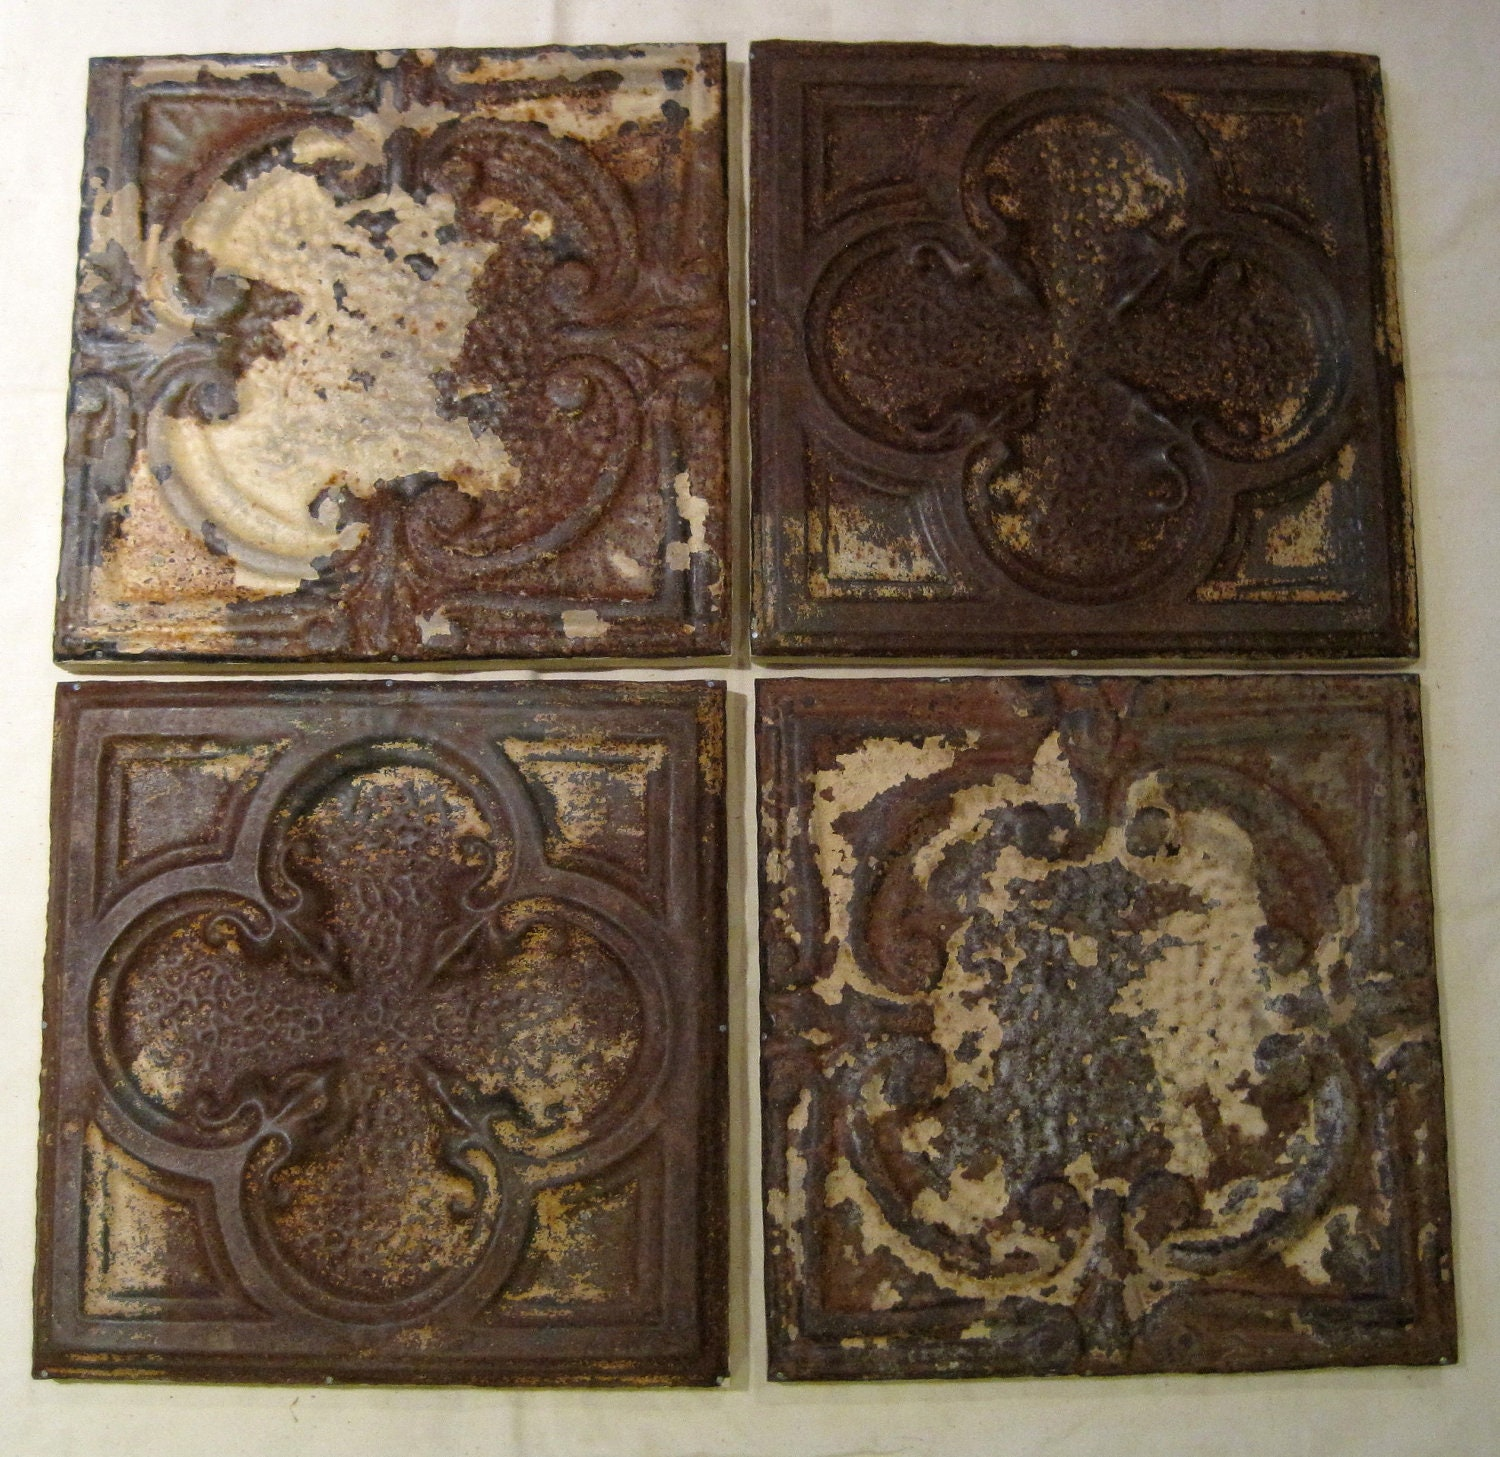 All 4 Antique Ceiling Tin Tiles Circa 1900 Framed Amp Ready To